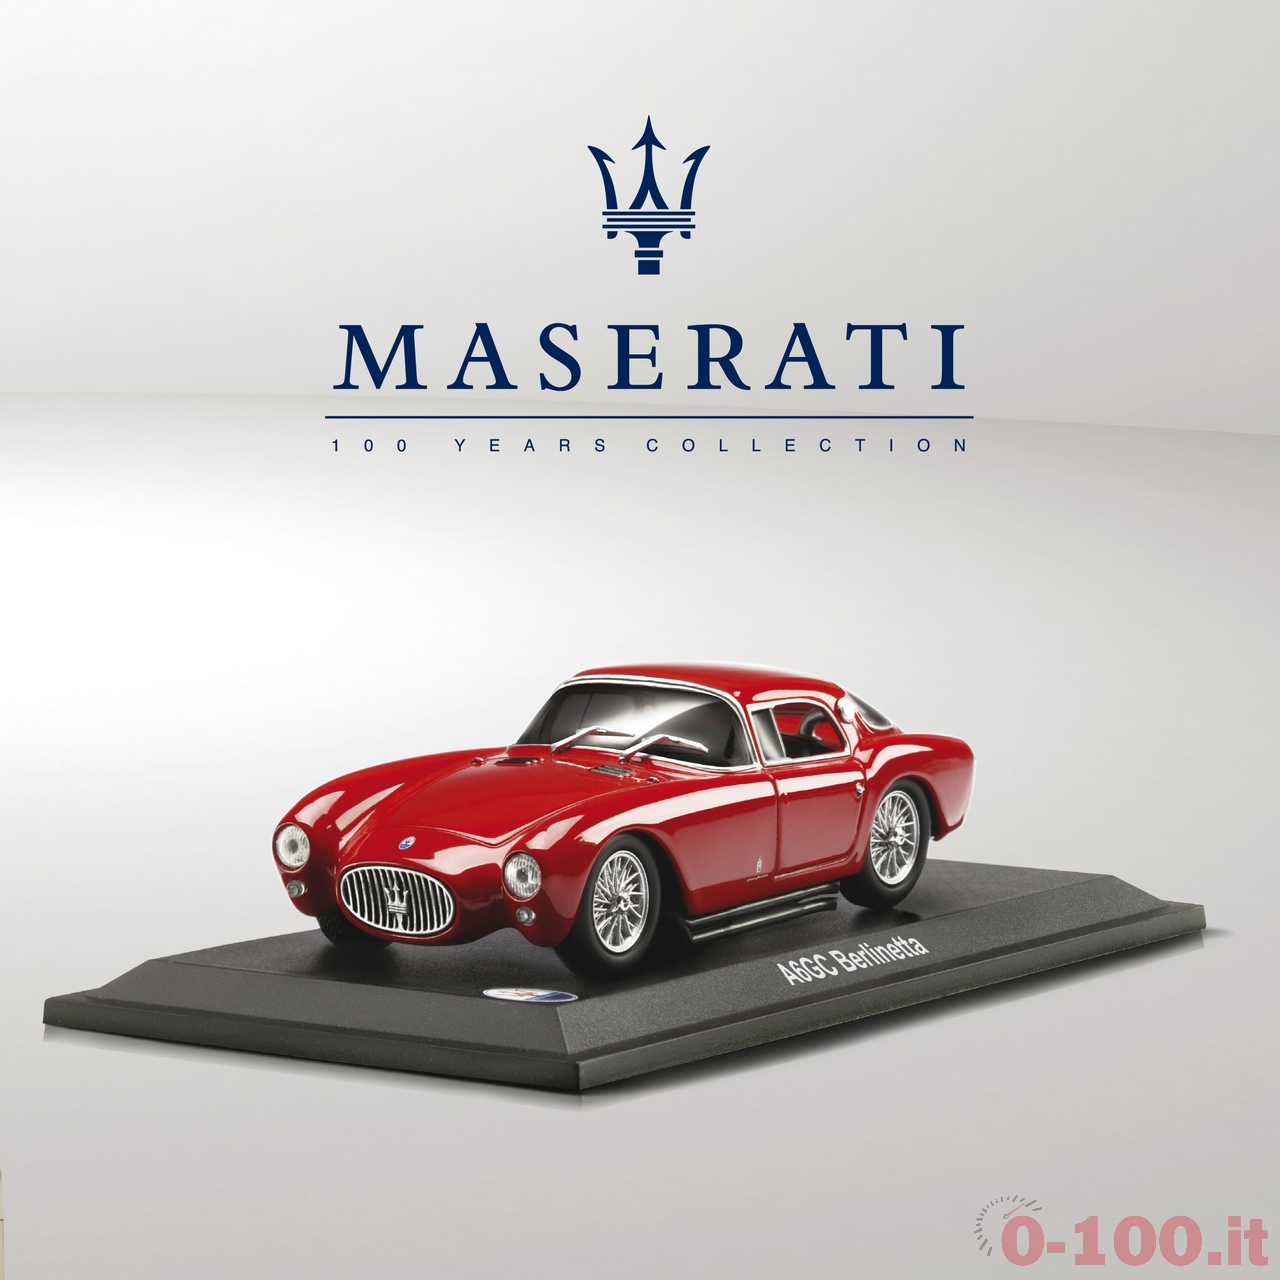 Maserati-100-Years-Collection-collateral_Gazzetta_prezzo_price0-100_4